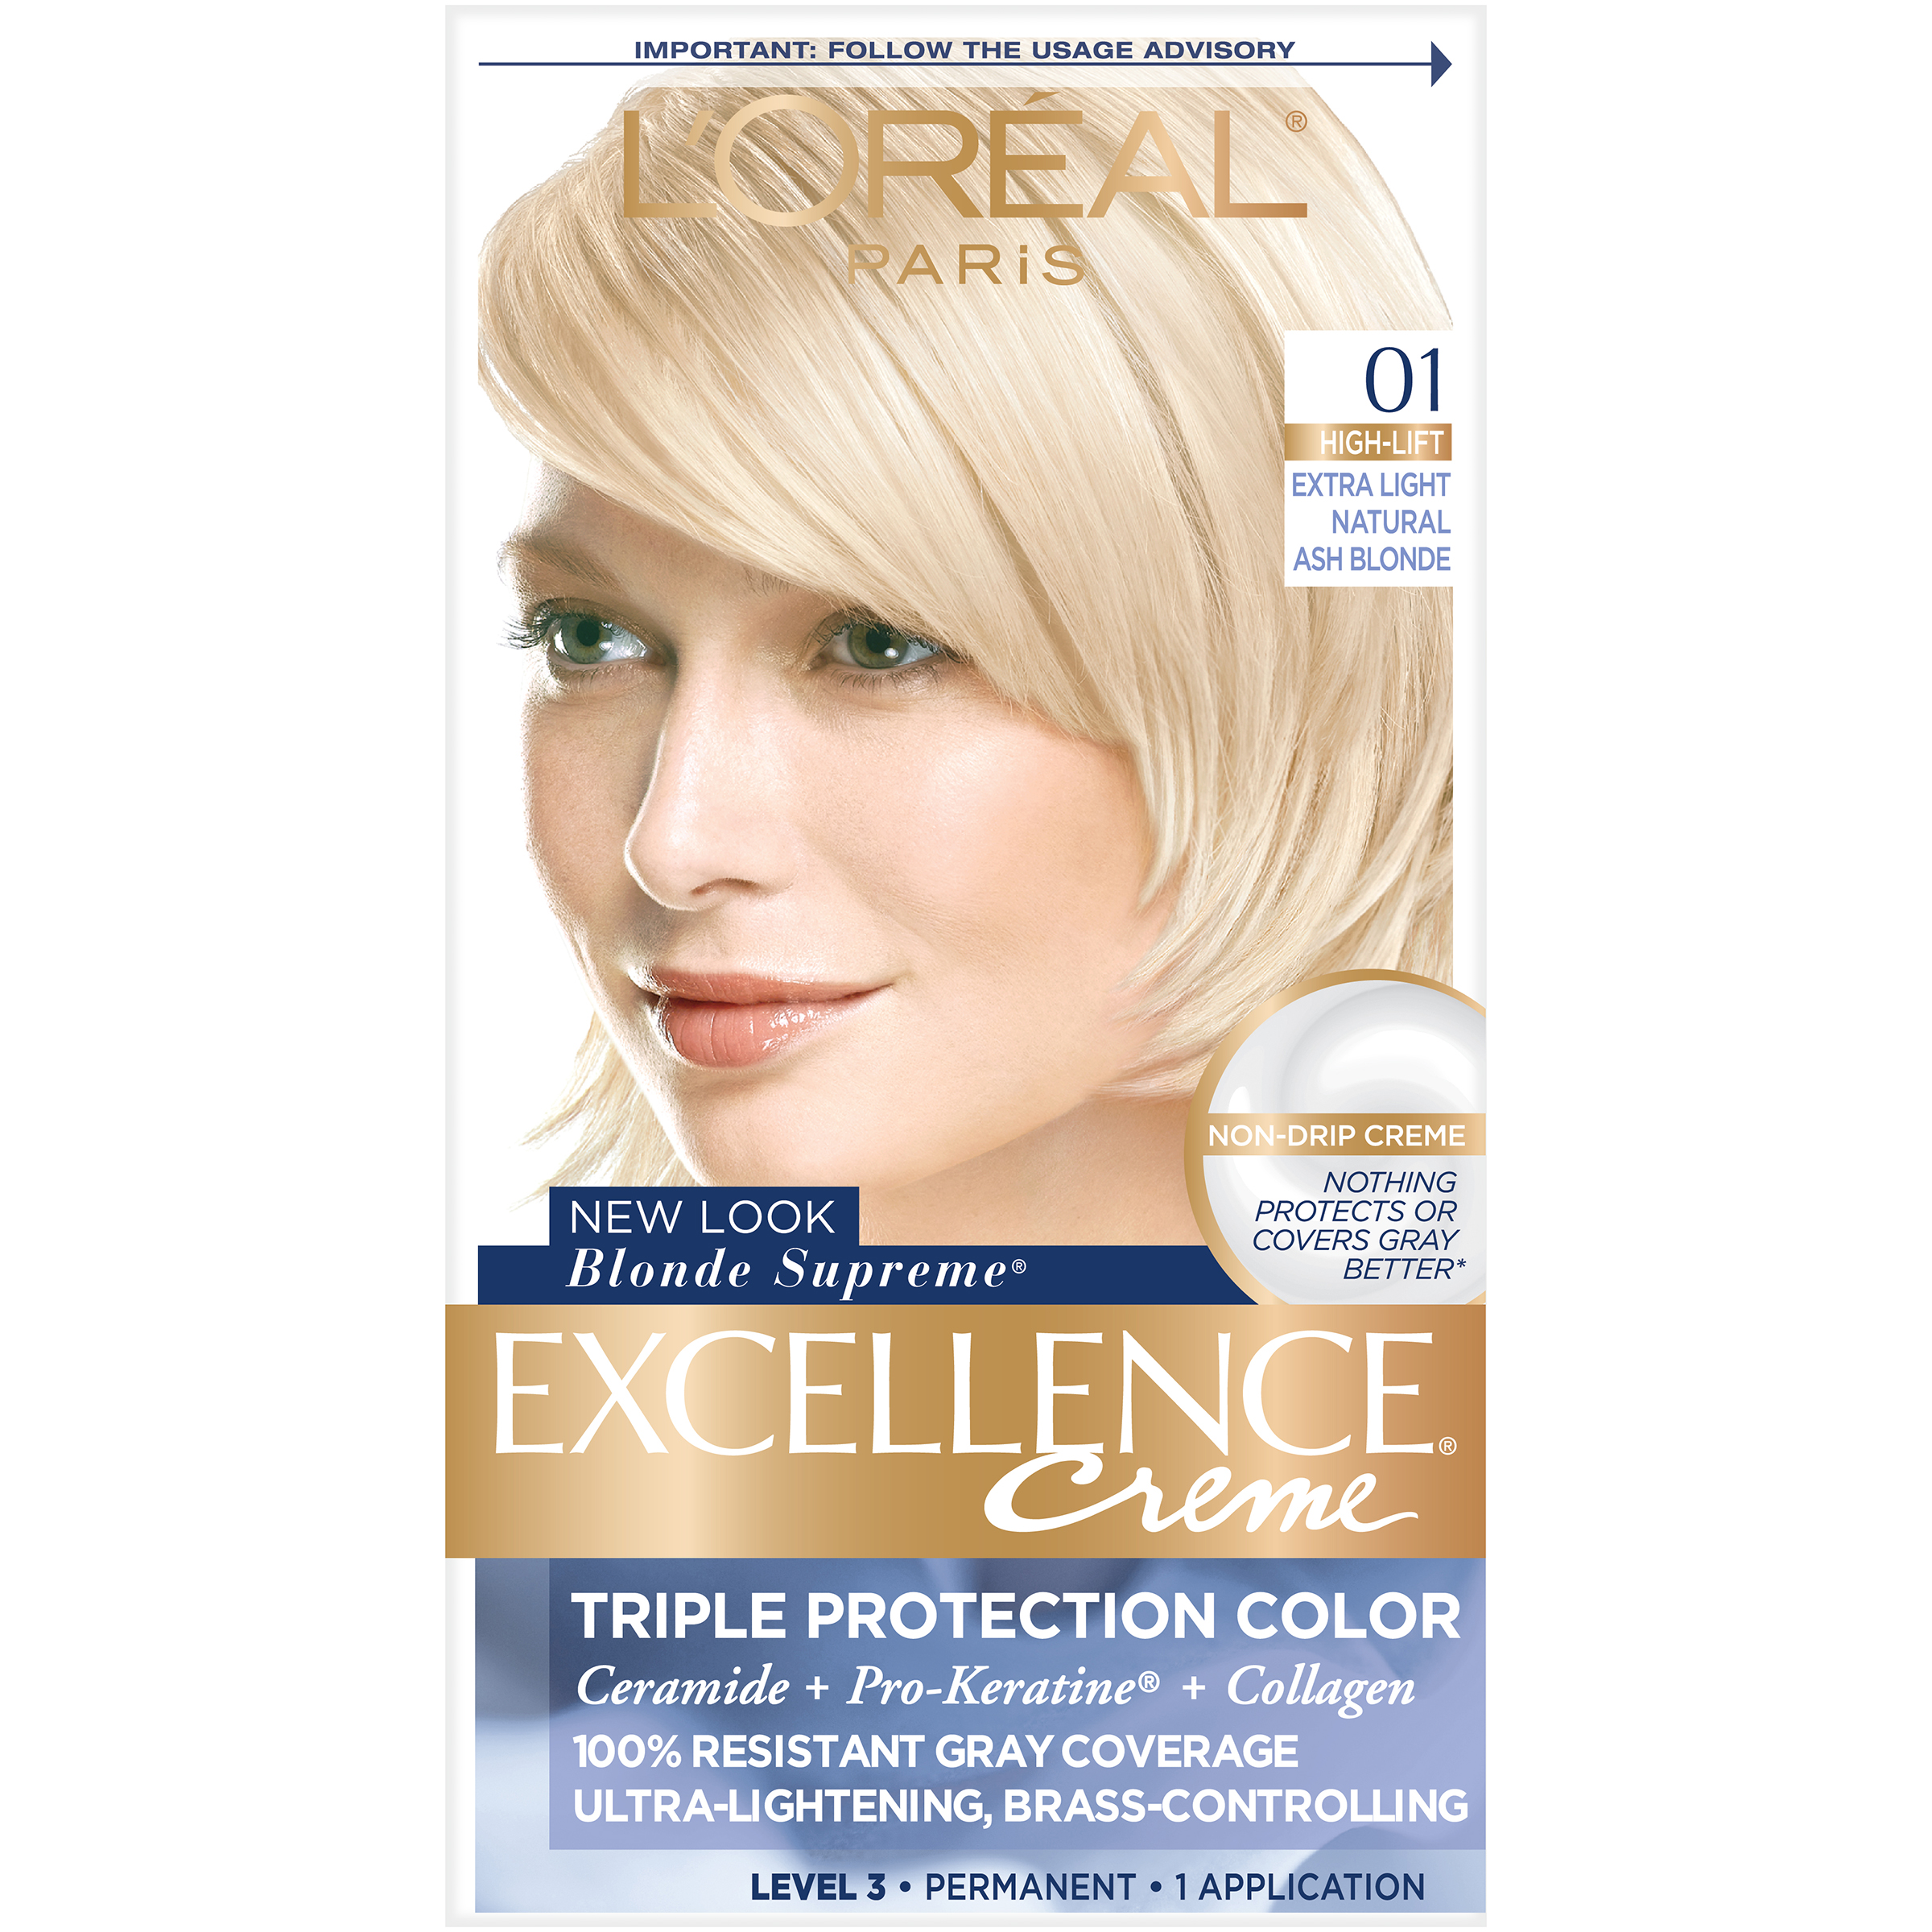 Loreal Paris Excellence Creme Hair Color Extra Light Ash Blonde 01